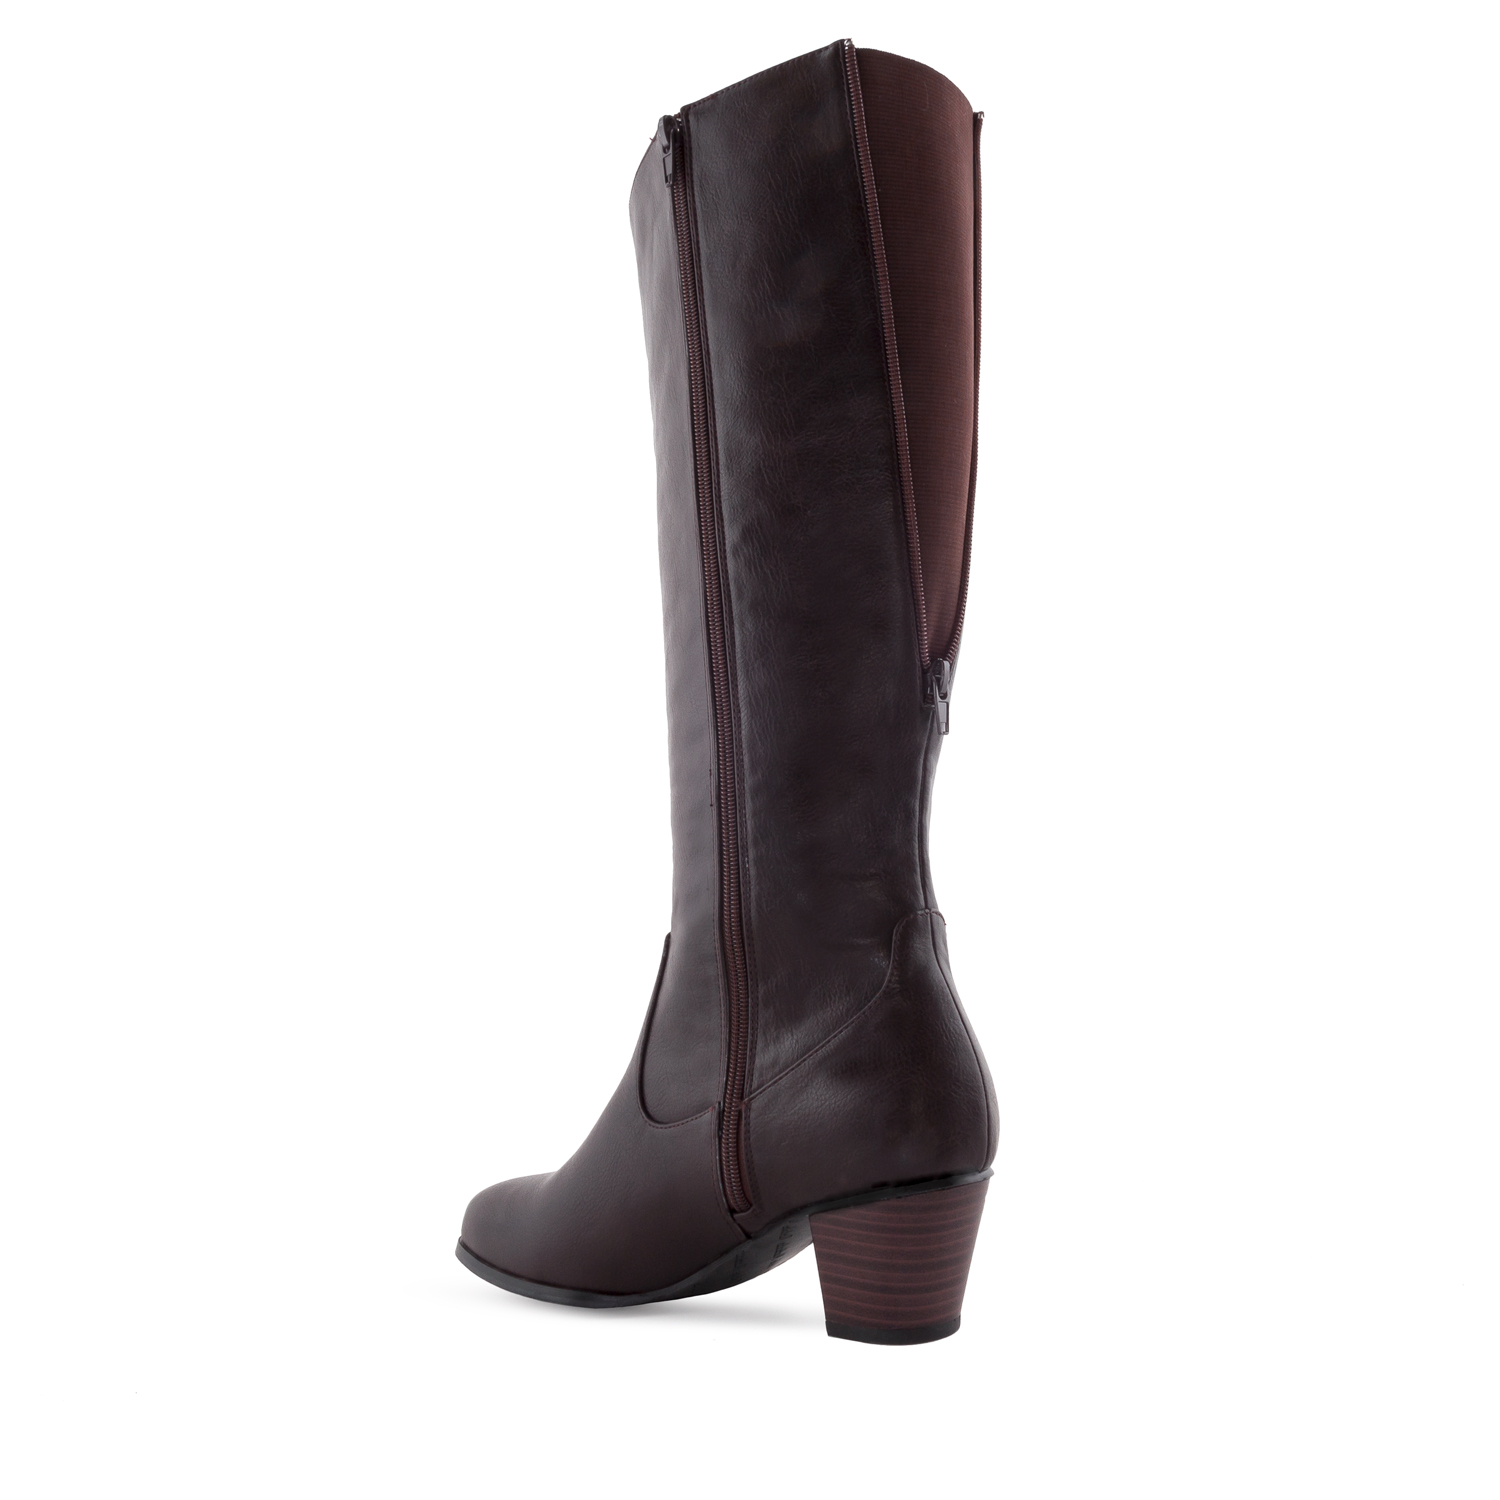 Boots in Brown faux Leather with elastic